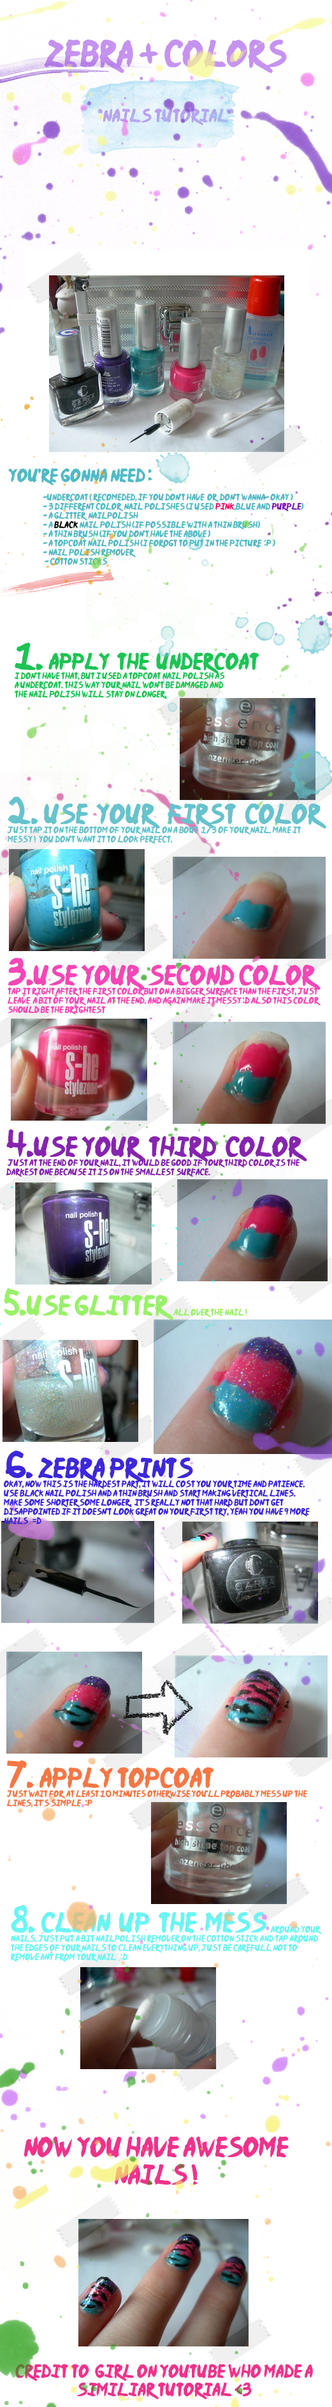 zebra + colors nails tutorial by Shey10